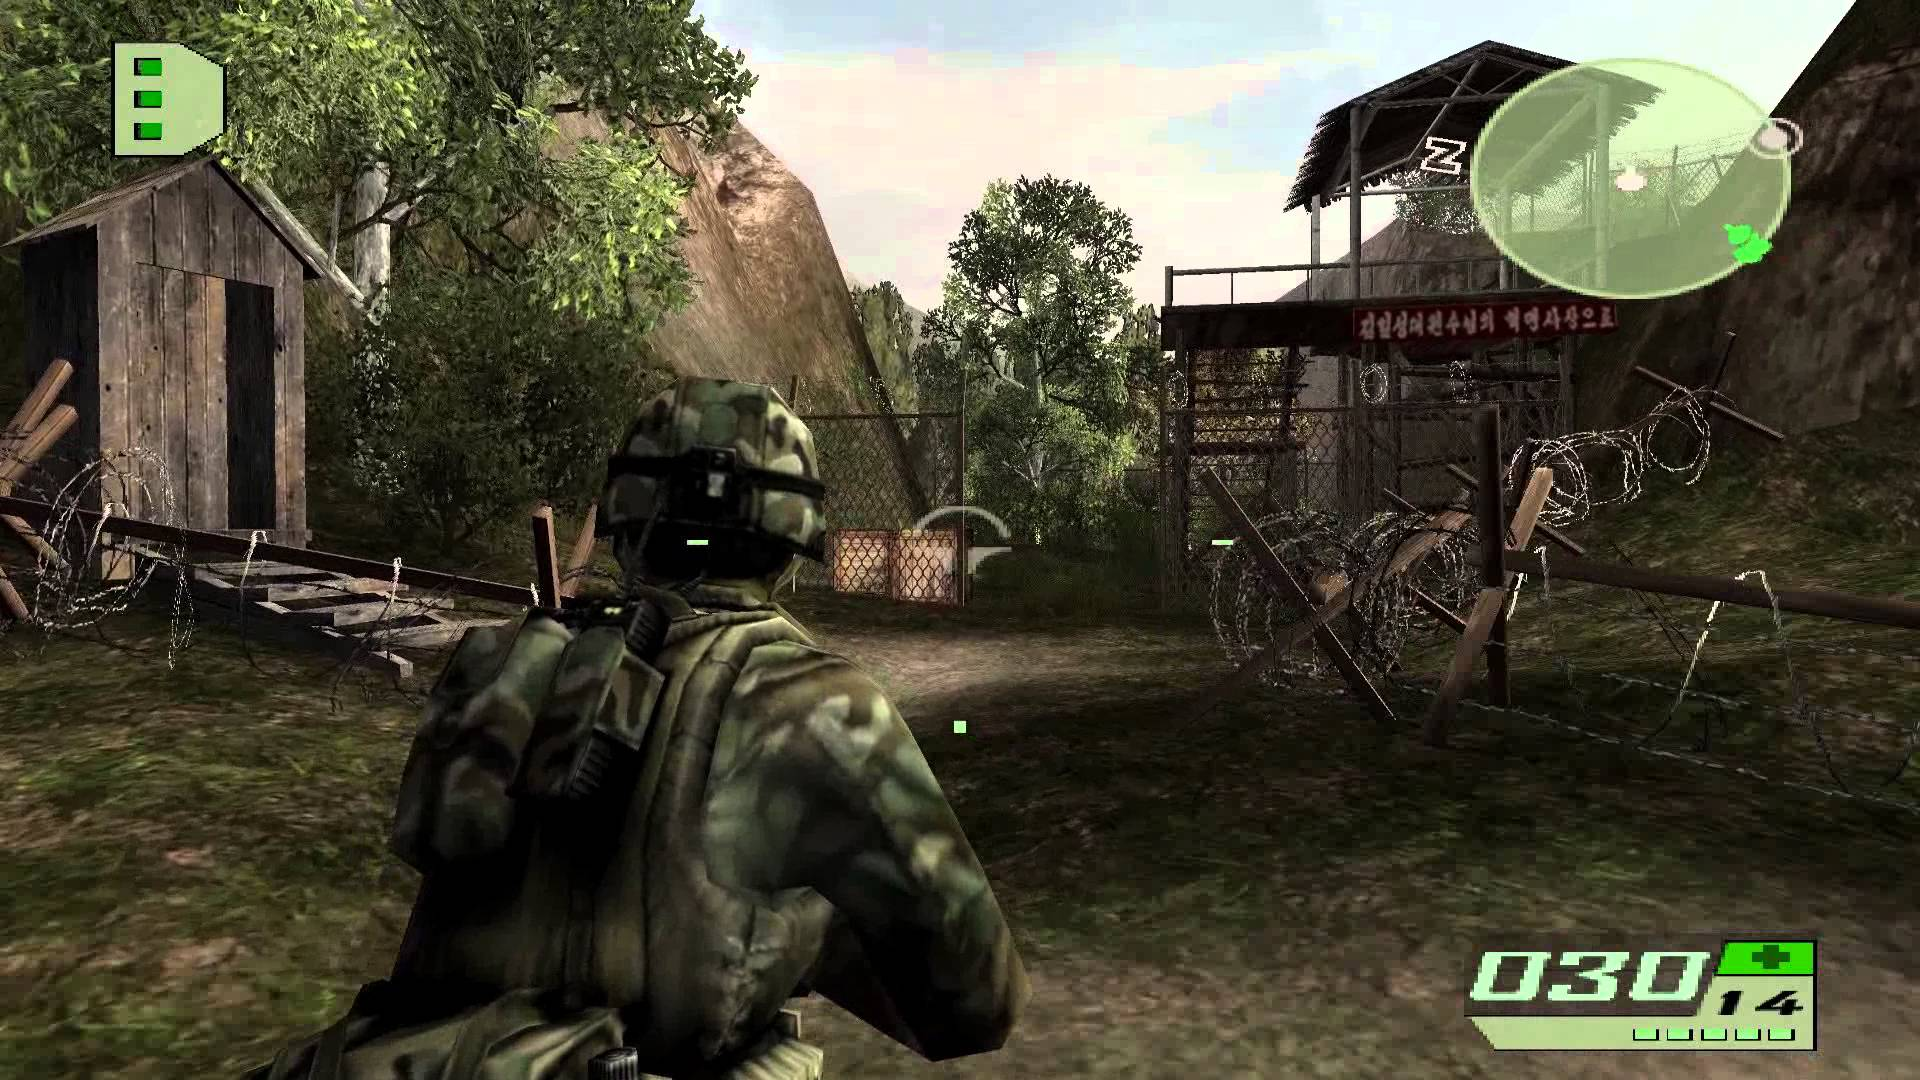 tom_clancy_s_ghost_recon_2_gamecube.jpg